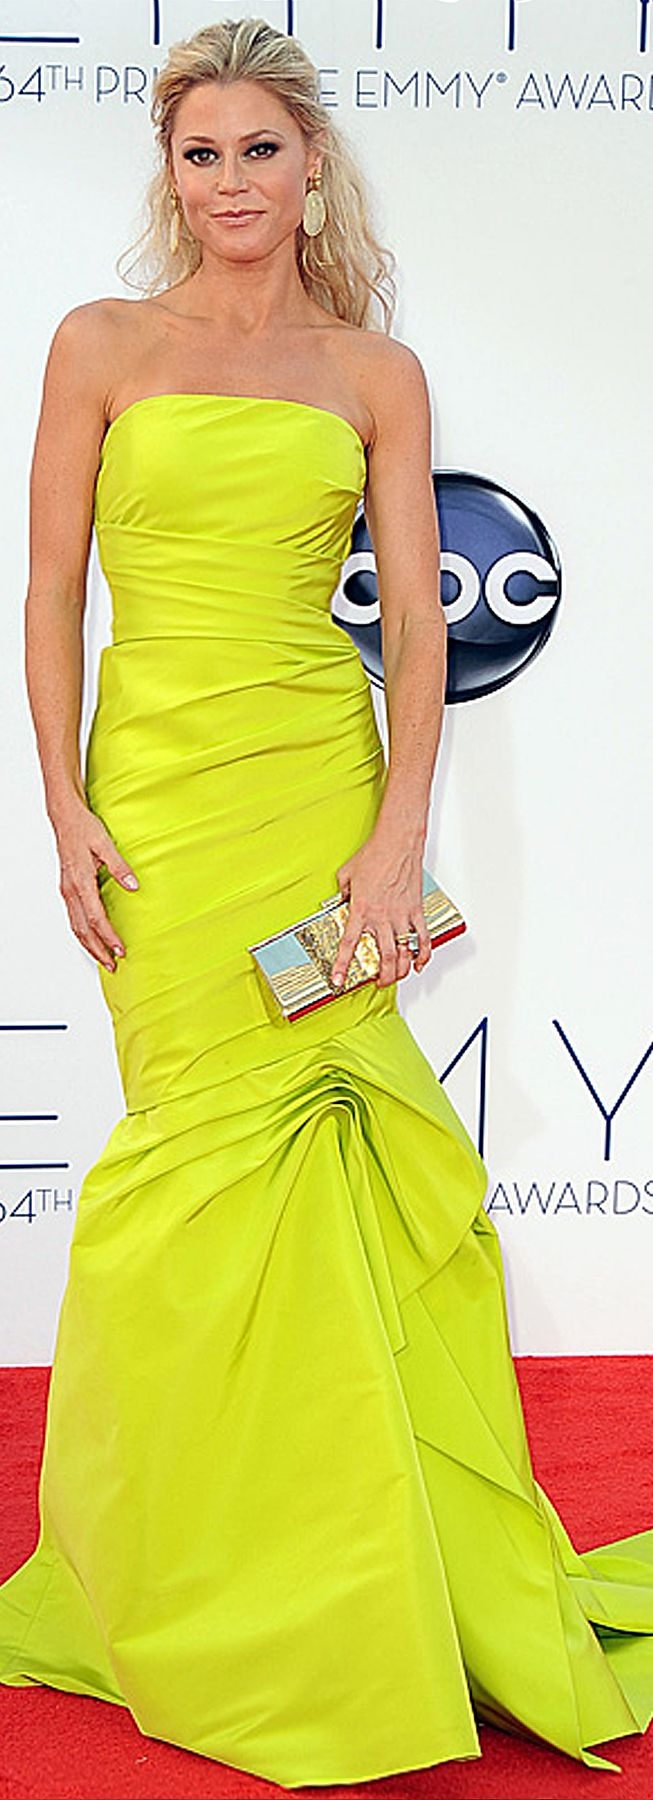 Julia Bowen in a strapless Monique Lhuillier gown at the Emmys.